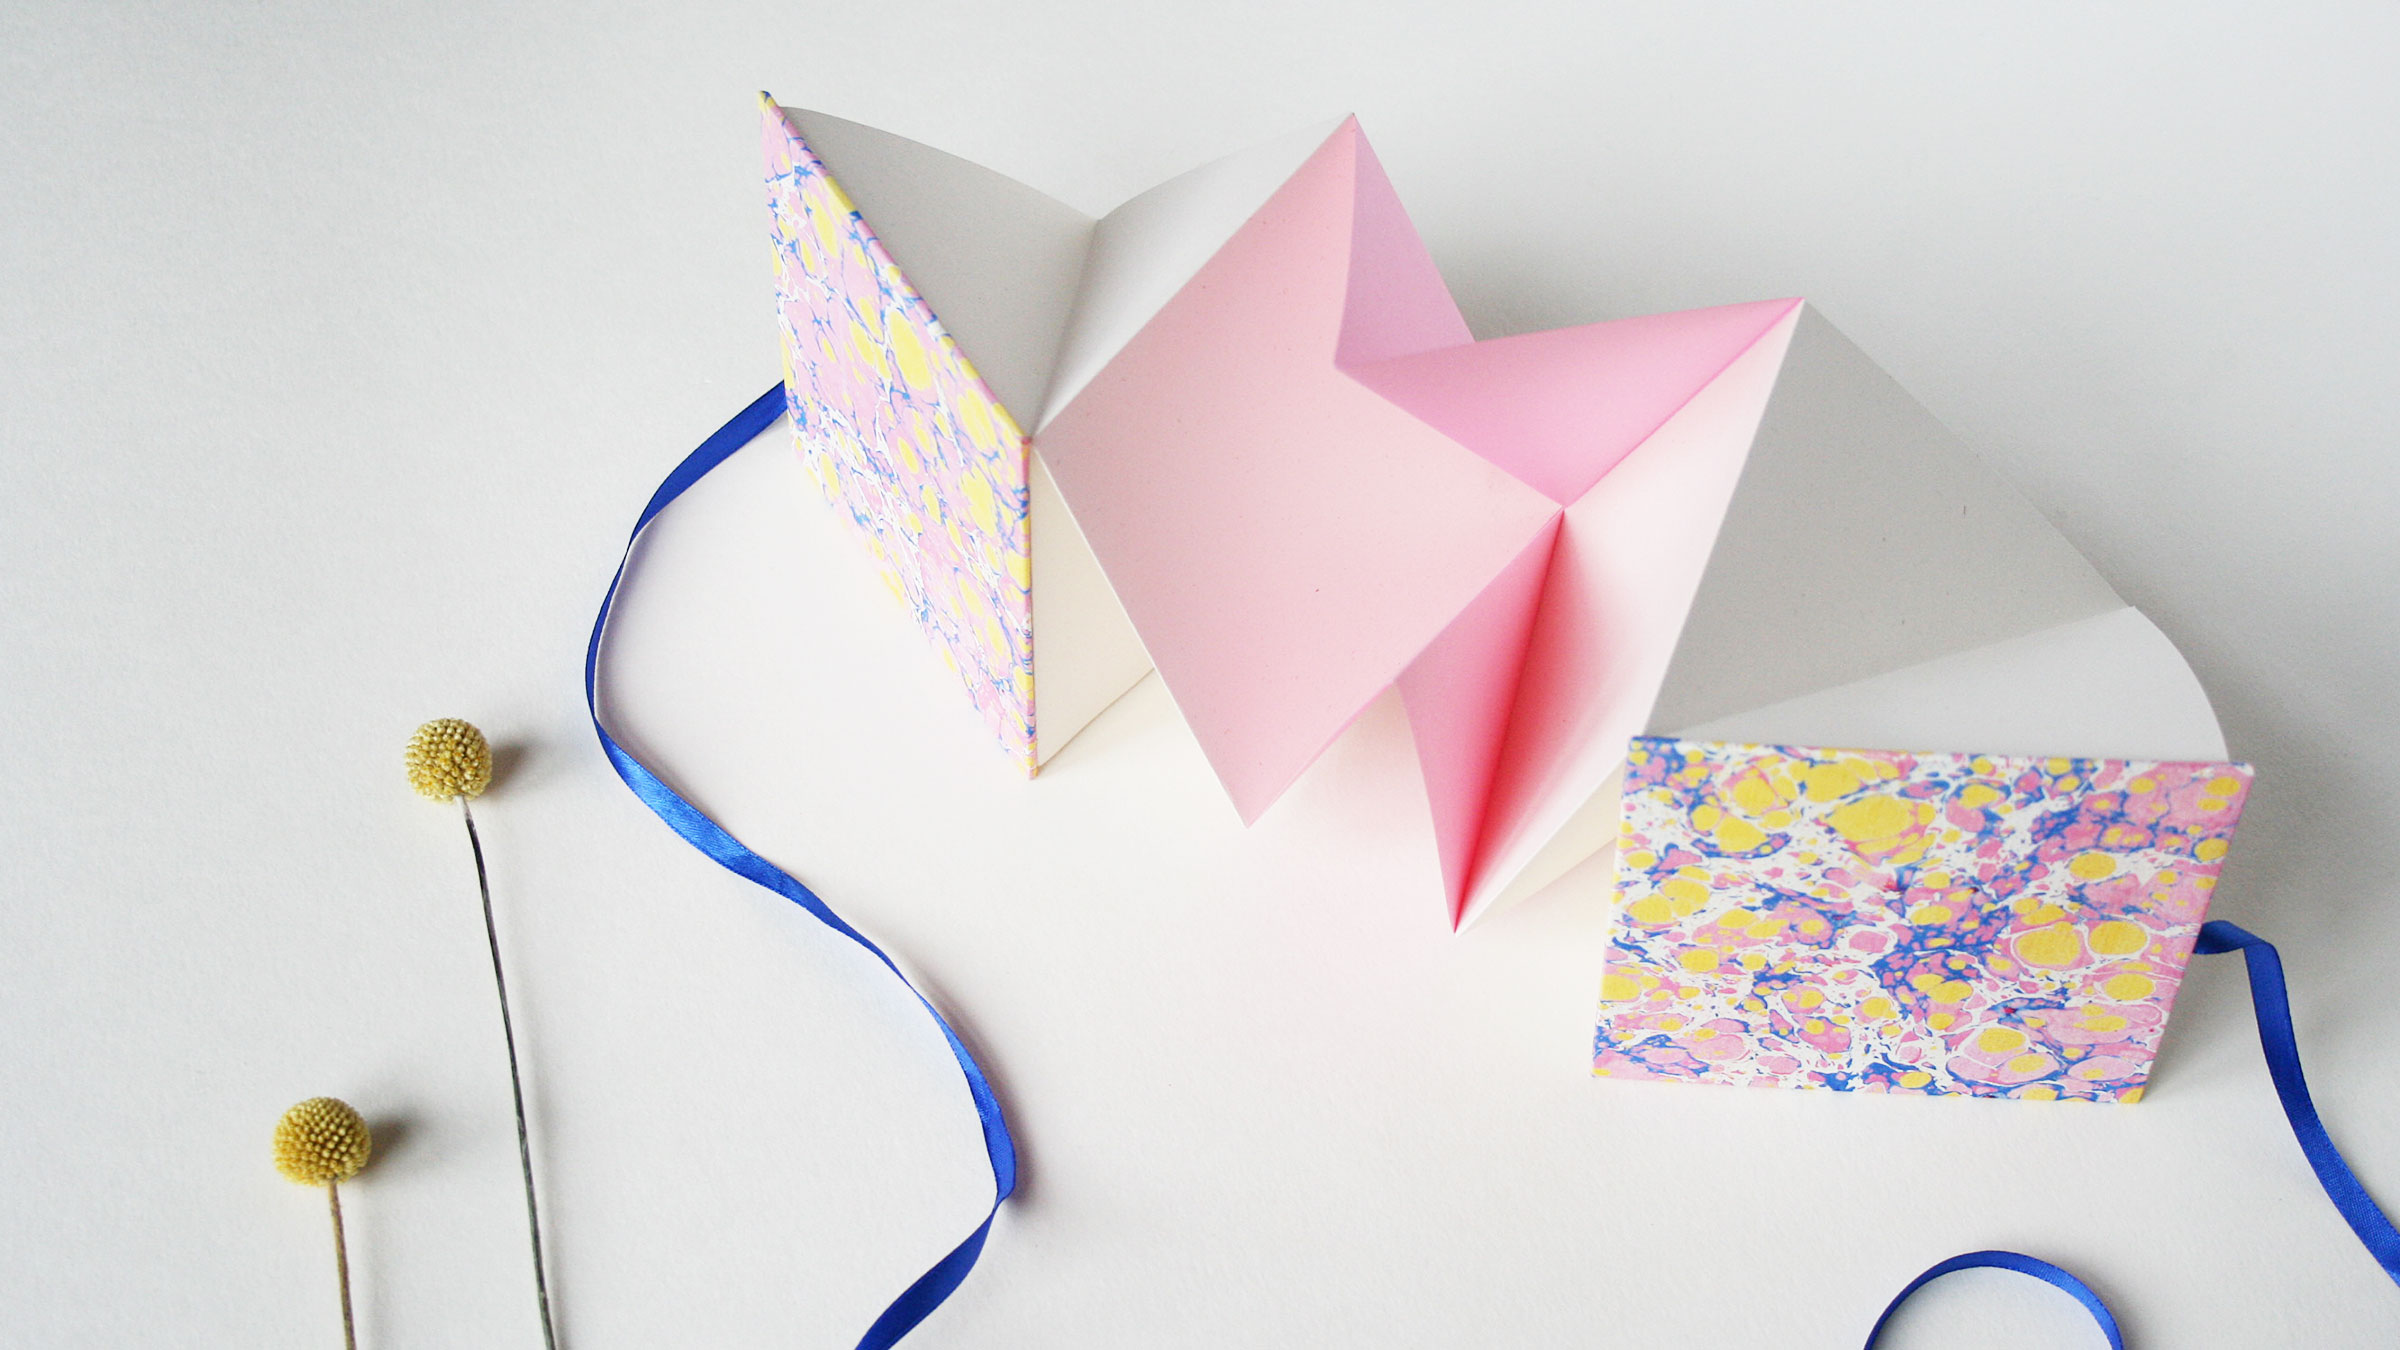 DIY Bookbinding Kit – Origami Pop up Books